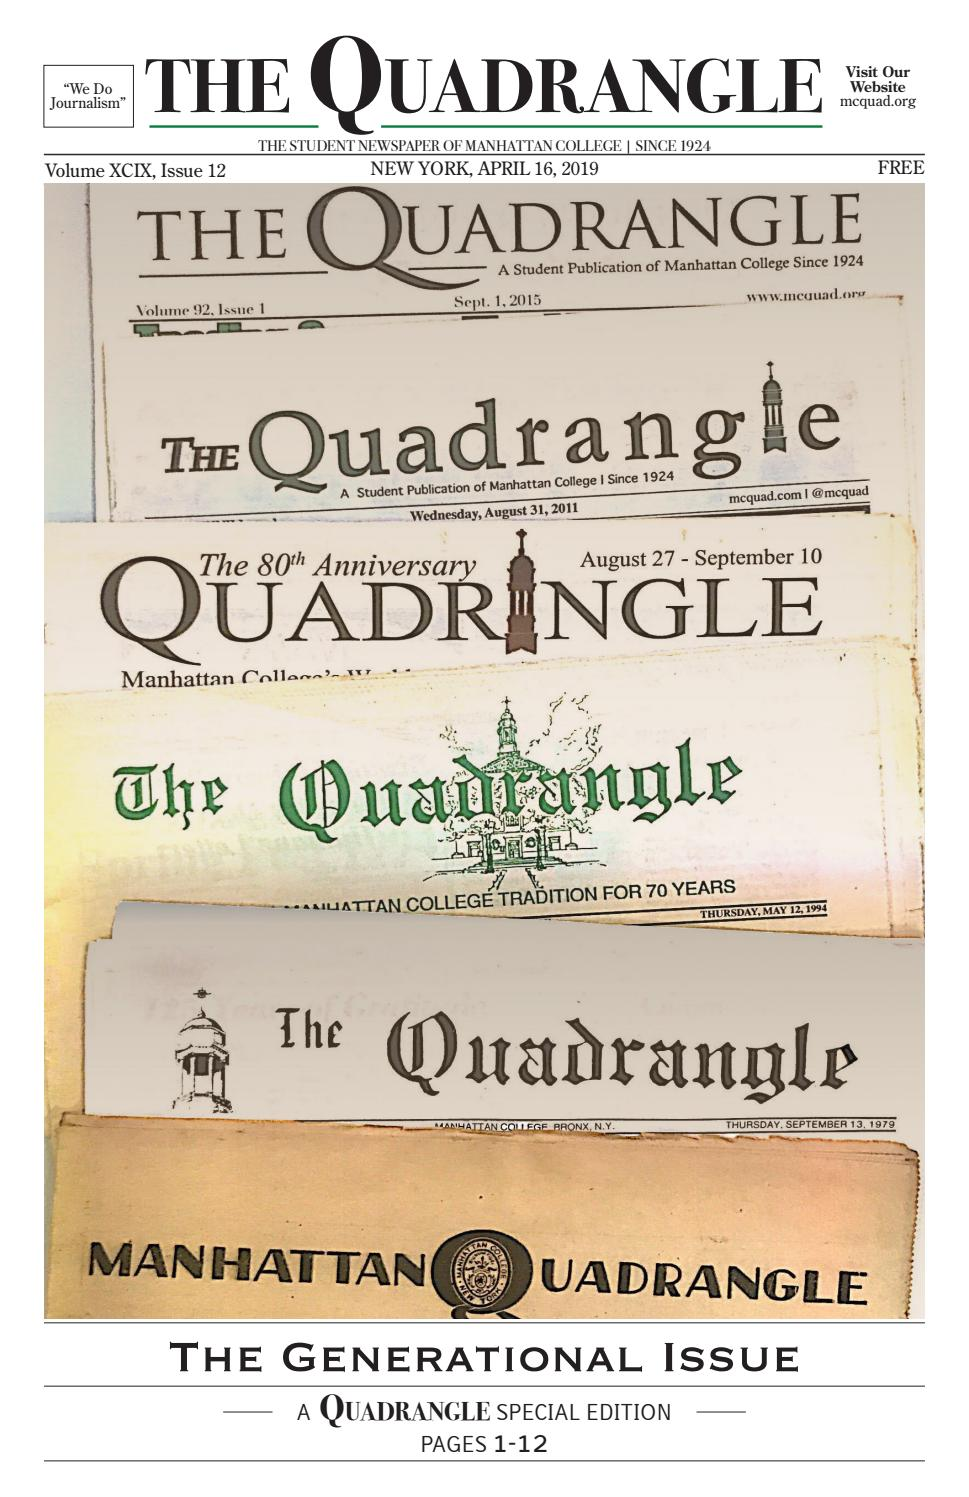 Issue 12, Spring 2019 - The Quadrangle by Manhattan College